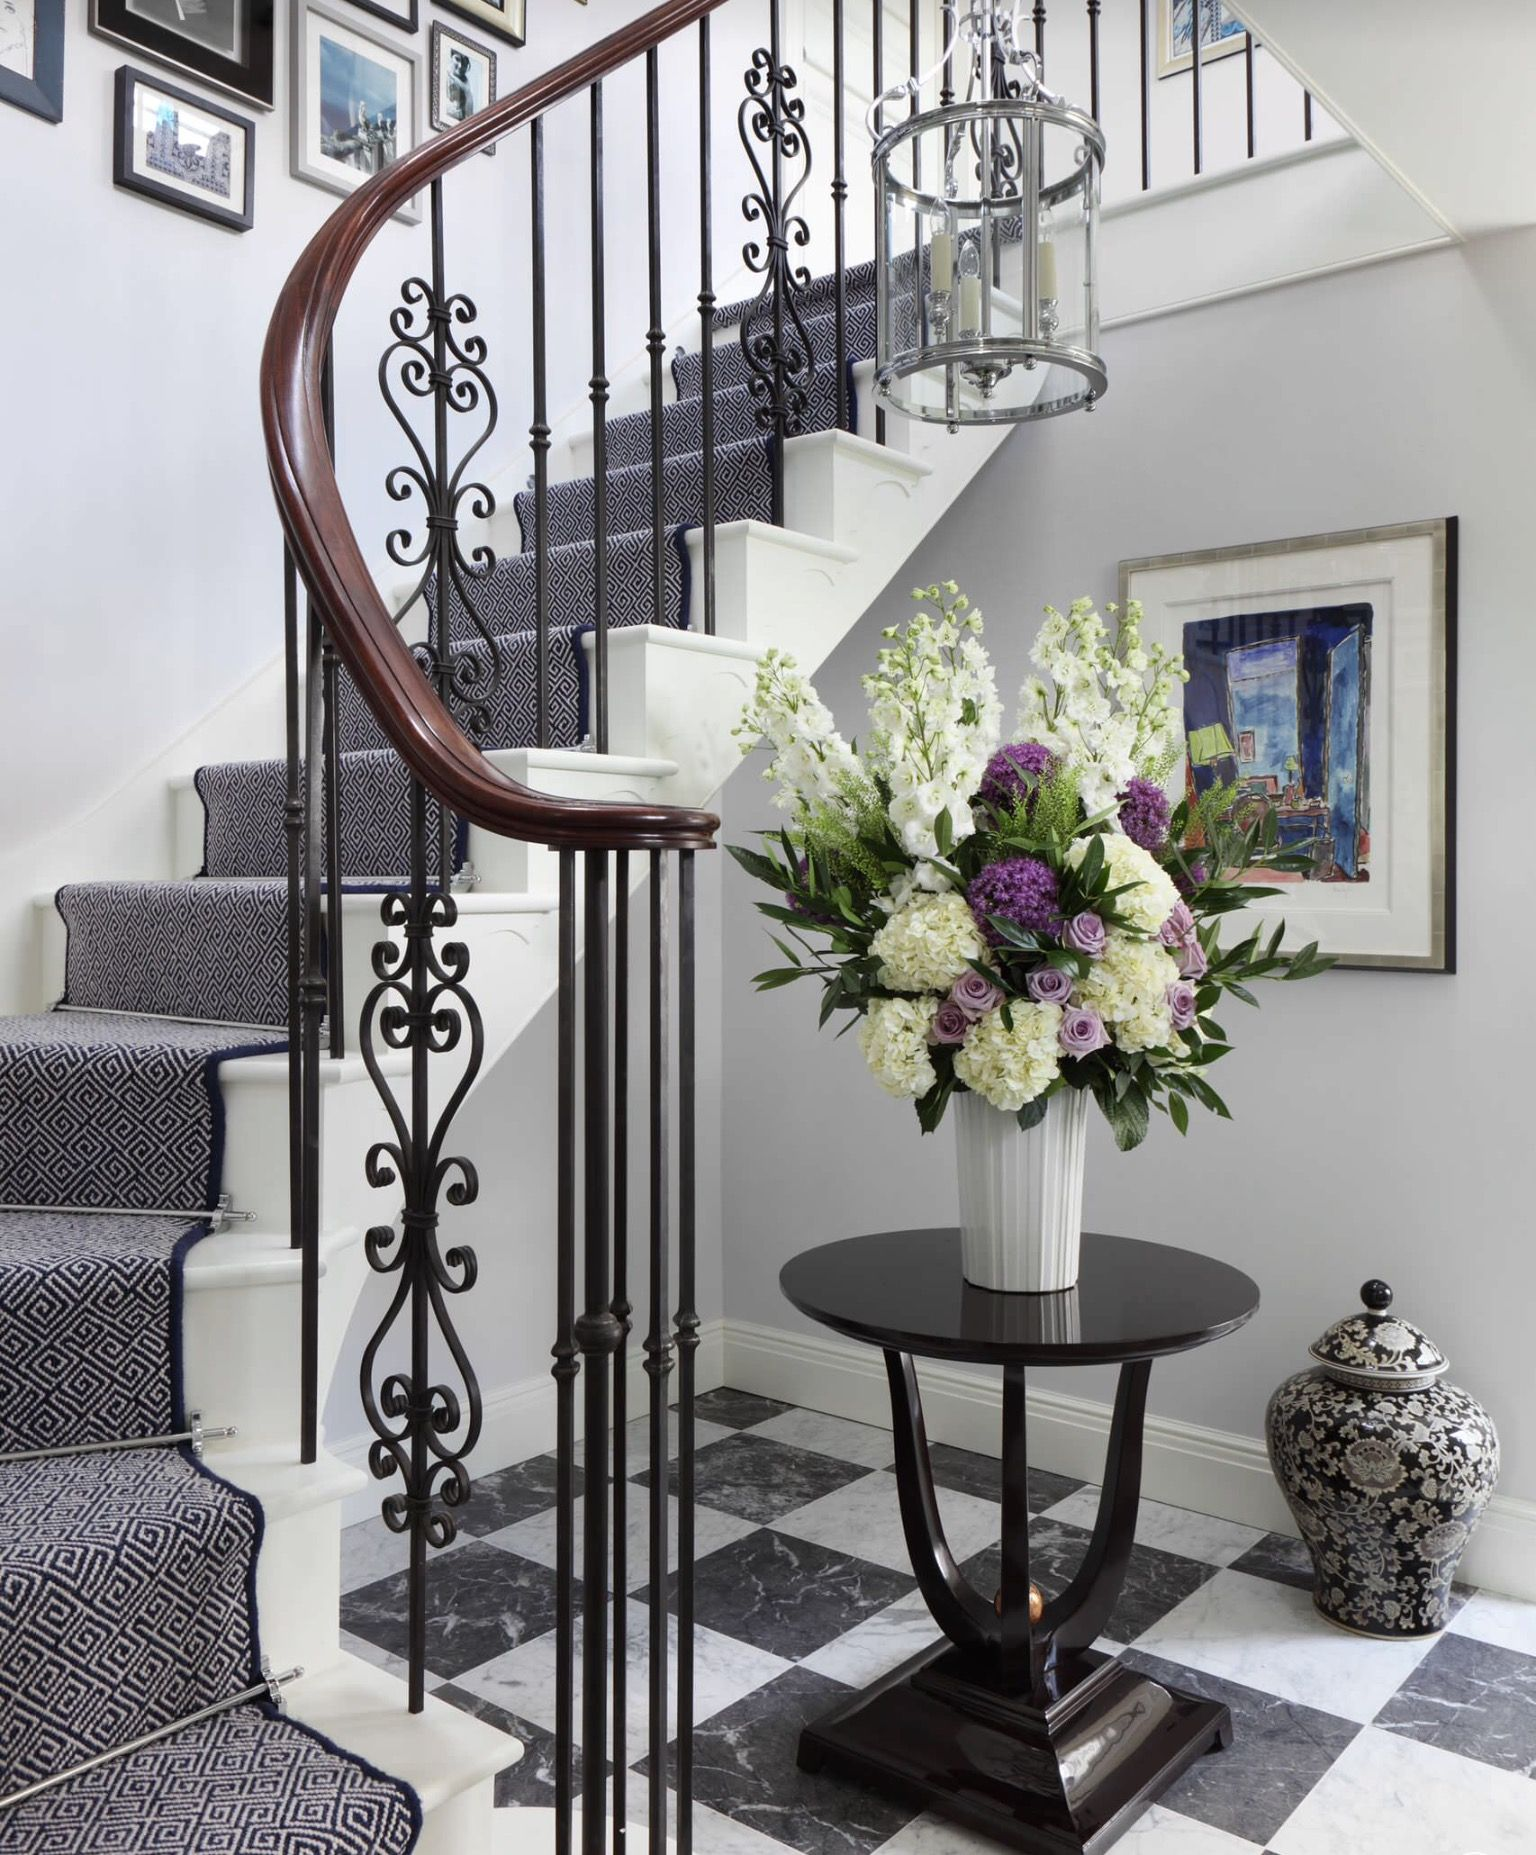 20 Excellent Traditional Staircases Design Ideas: Pin By Evelyn Yoanita On Stairs